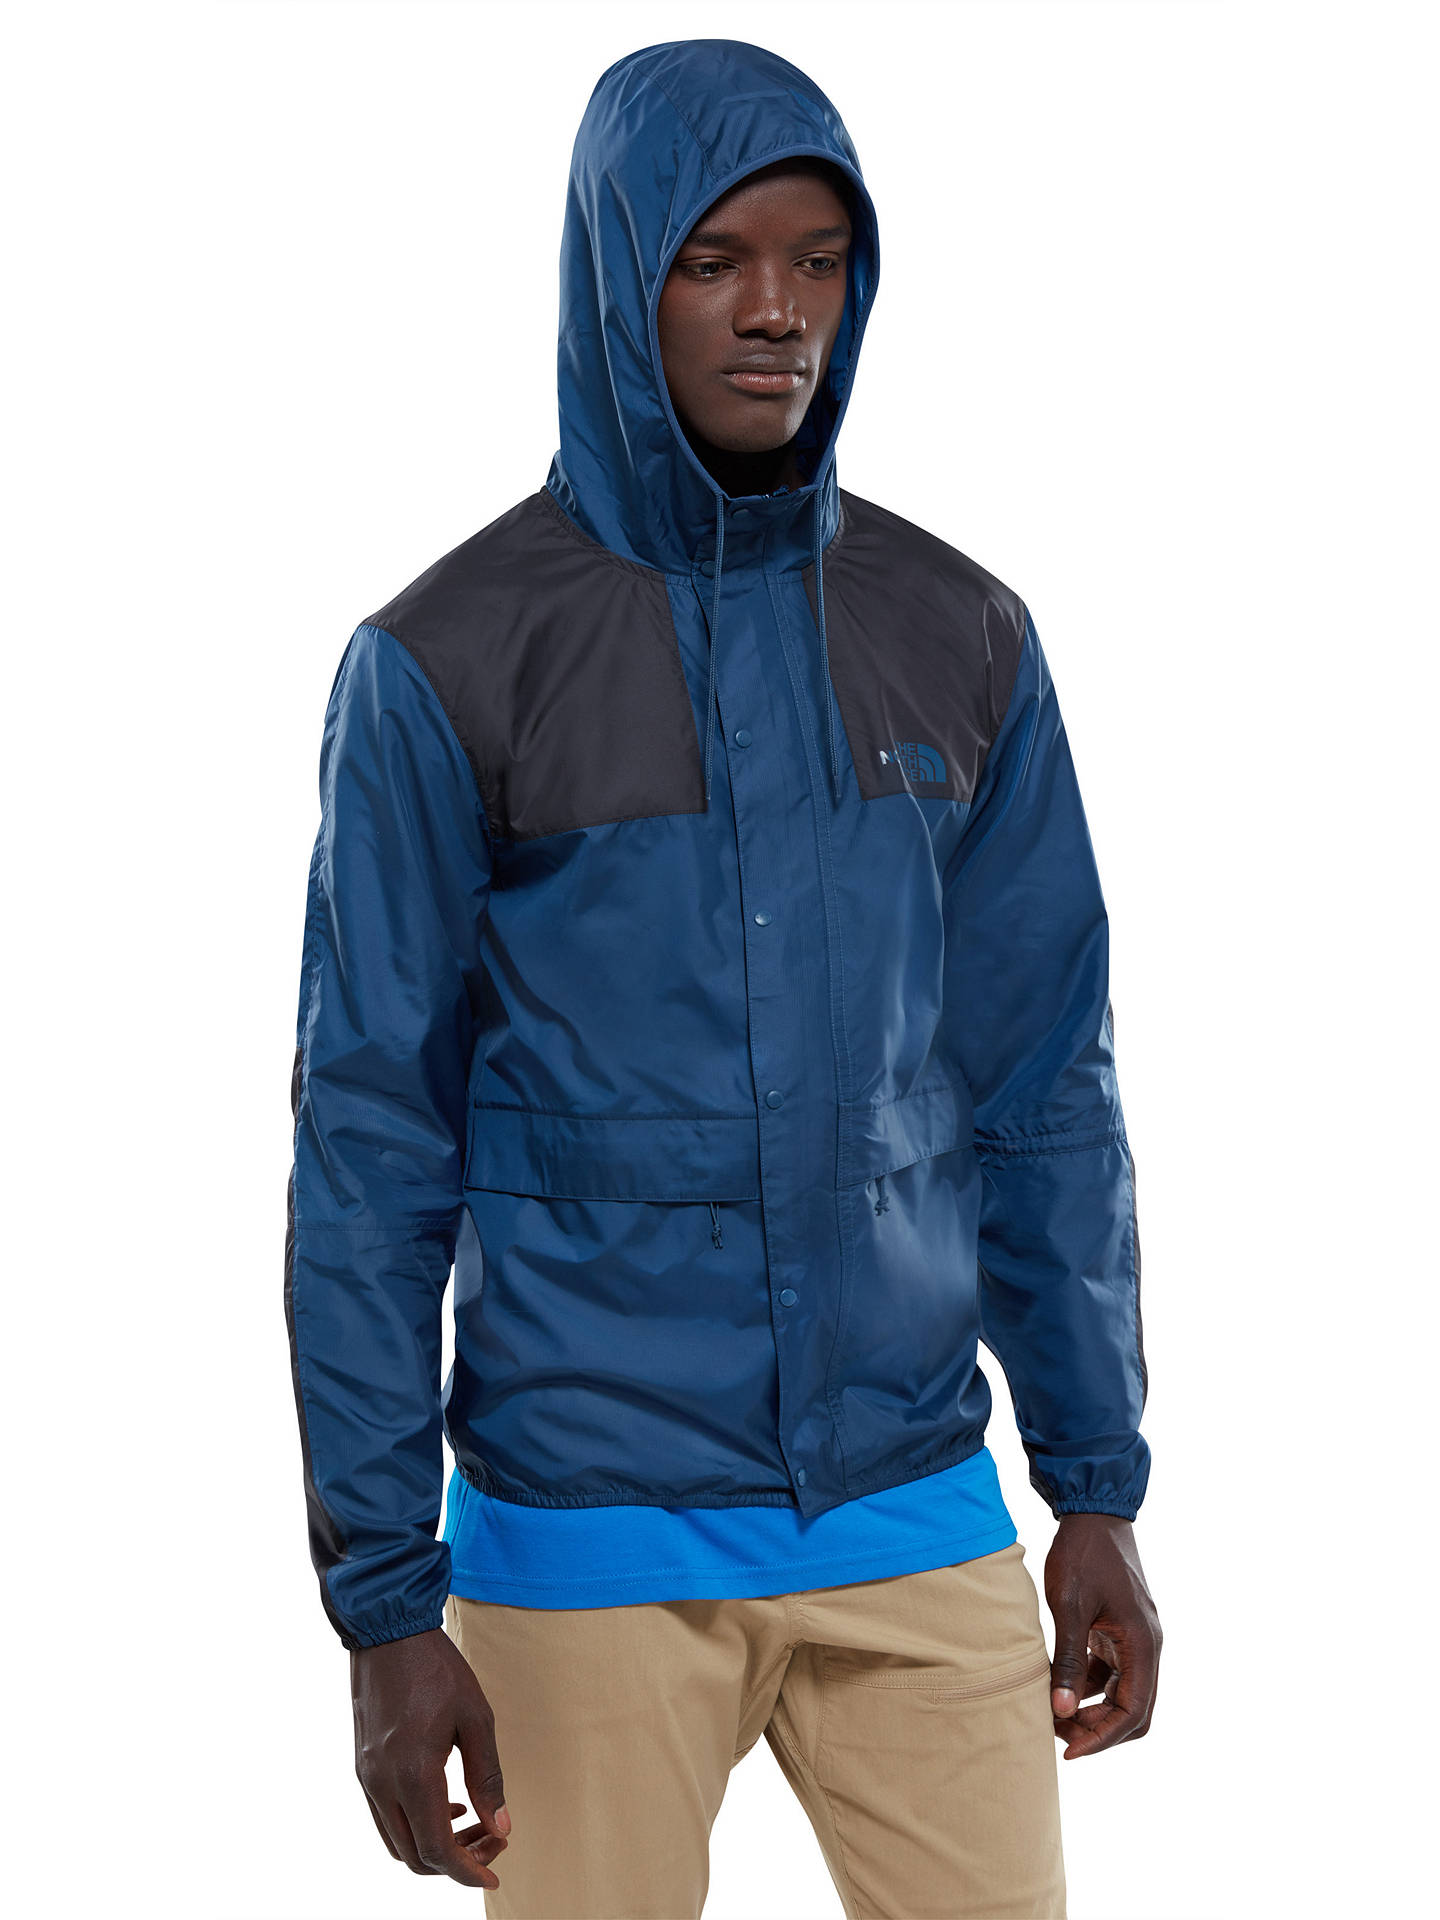 bbe61298e The North Face 1985 Mountain Men's Jacket, Blue at John Lewis & Partners